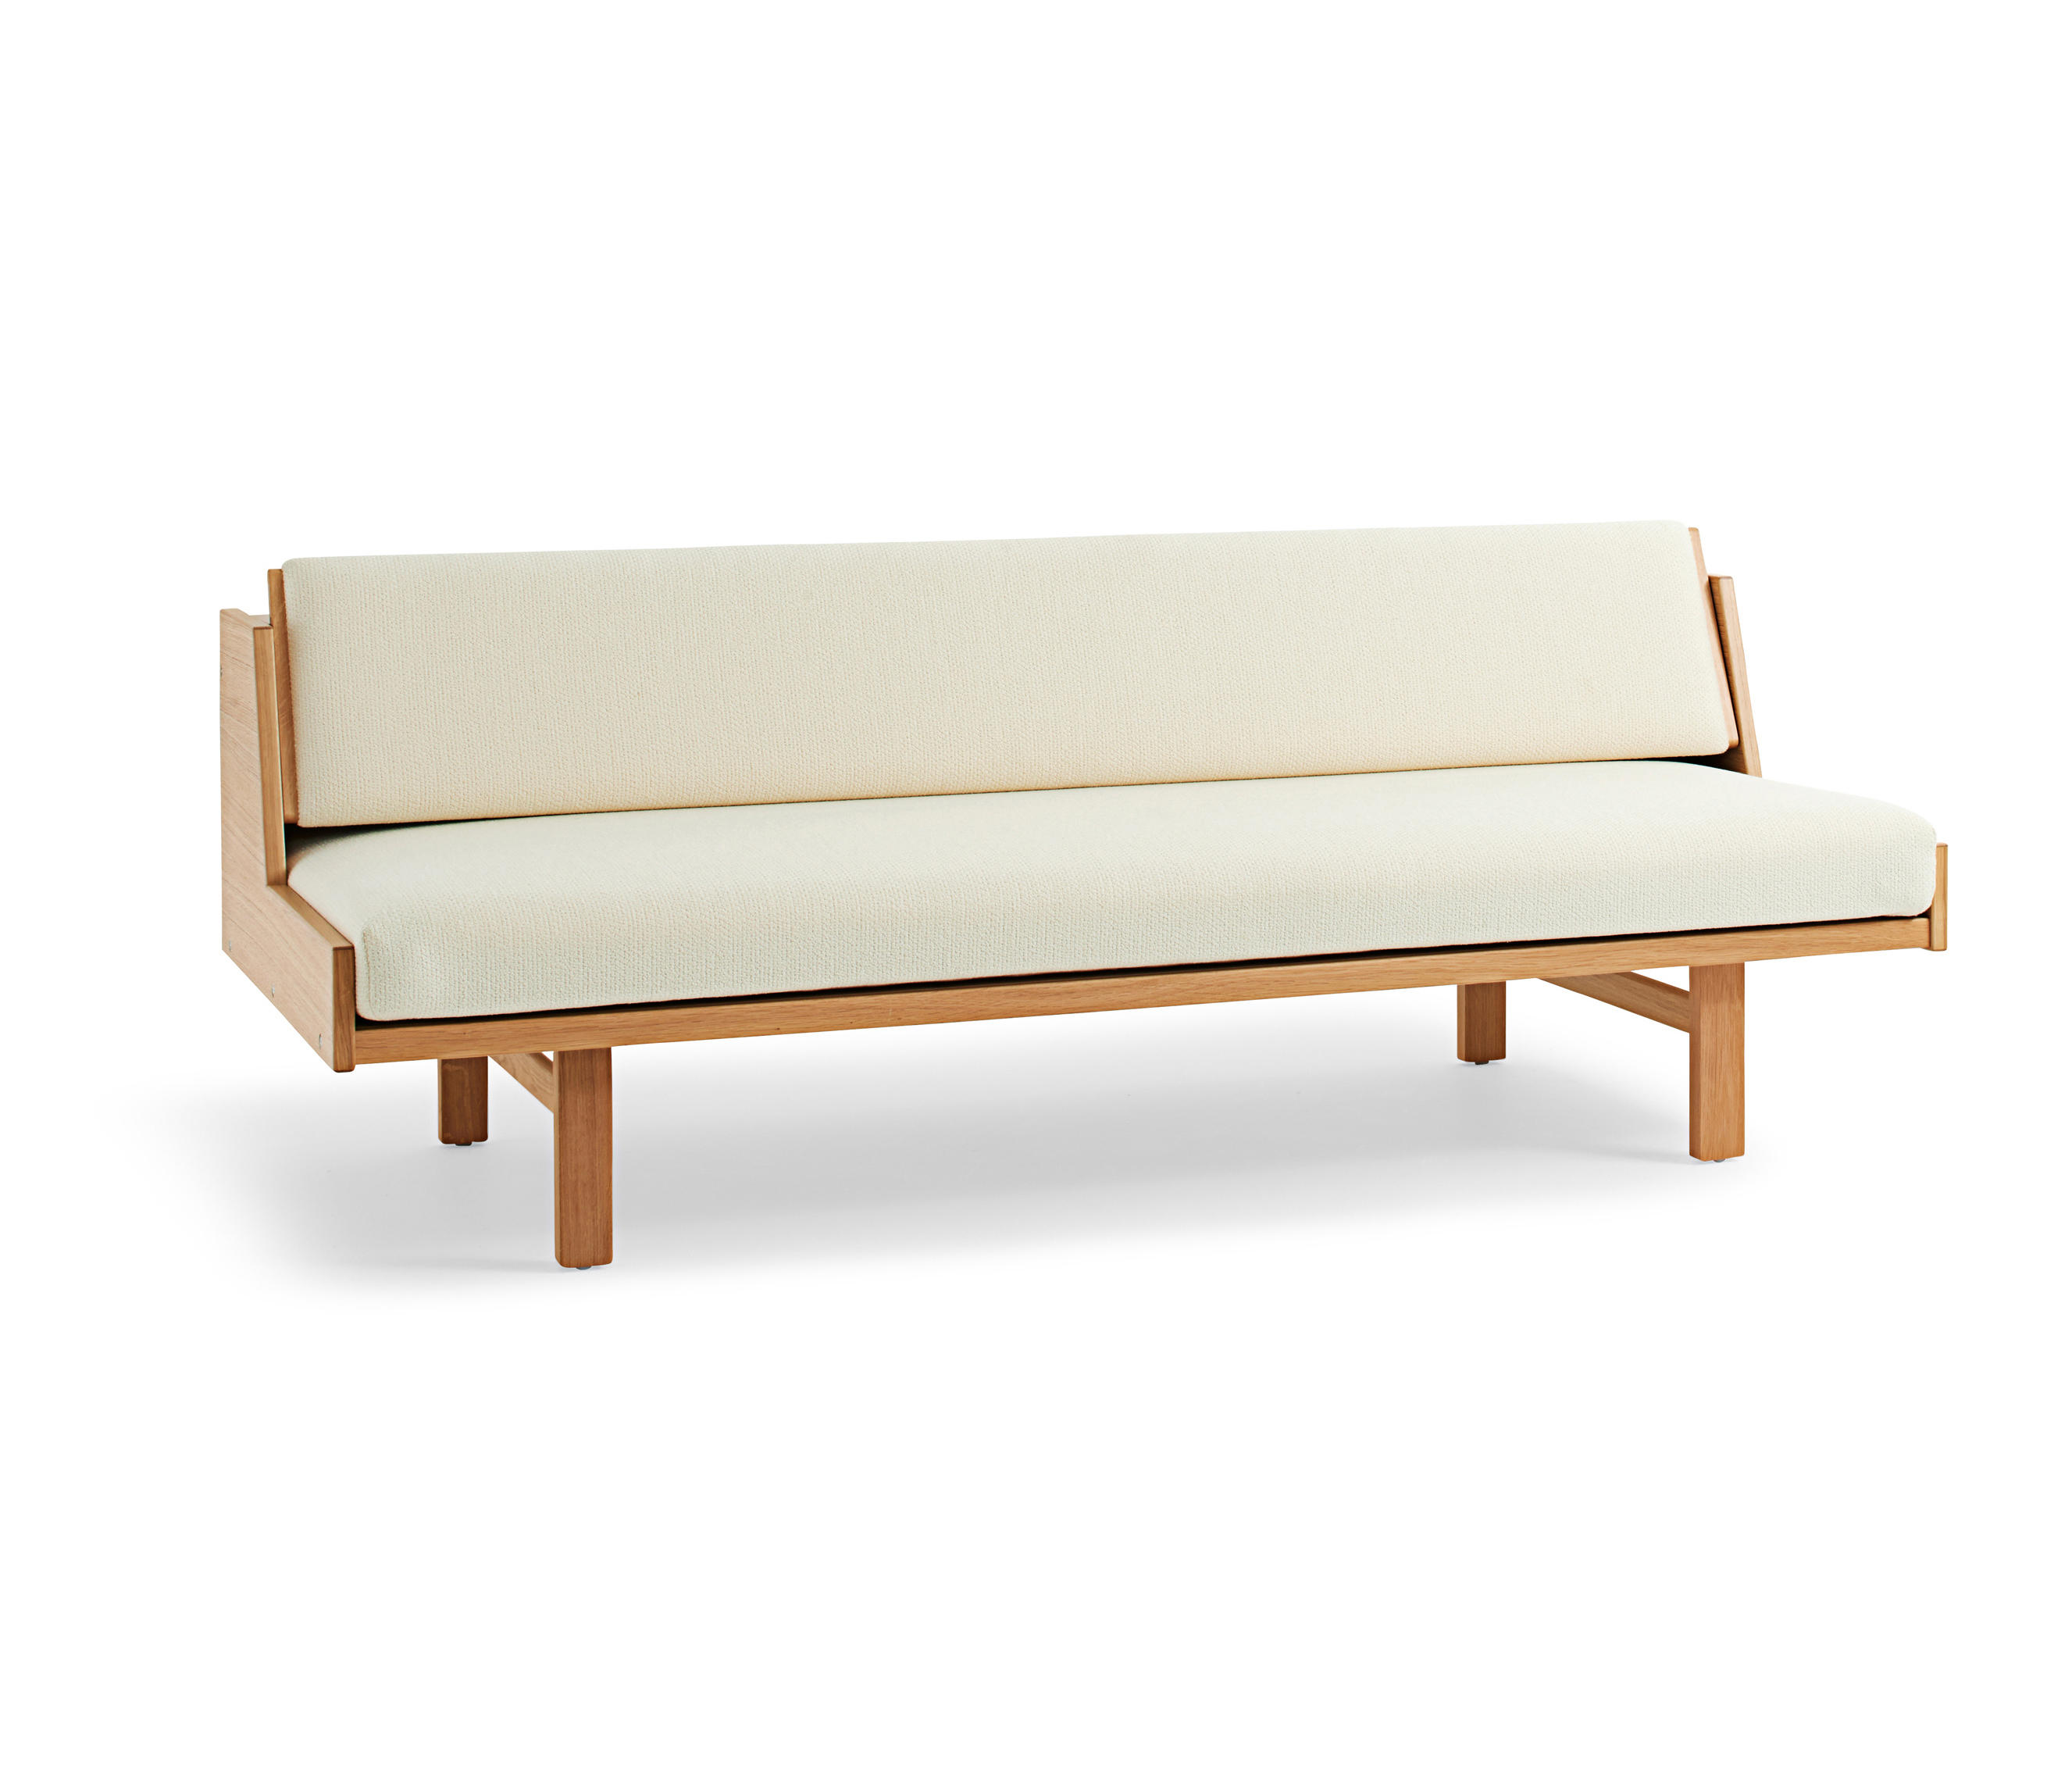 GE 258 Day Bed By Getama Danmark